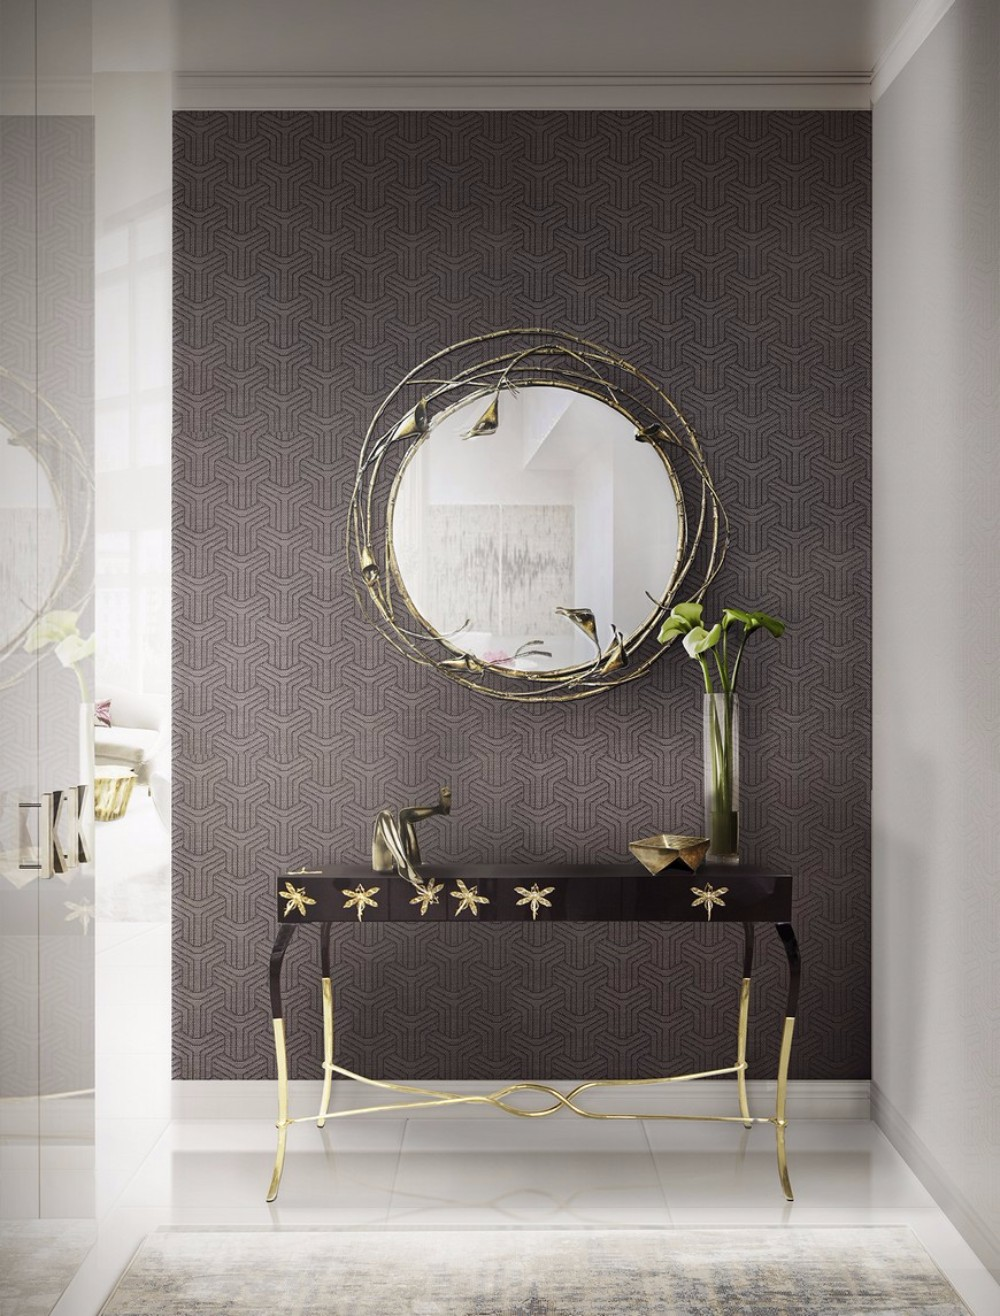 Stunning Wall Mirror Designs for your Living Room Decor Wall Mirror Designs Stunning Wall Mirror Designs for your Living Room Decor Stunning Wall Mirror Designs for your Living Room Decor3